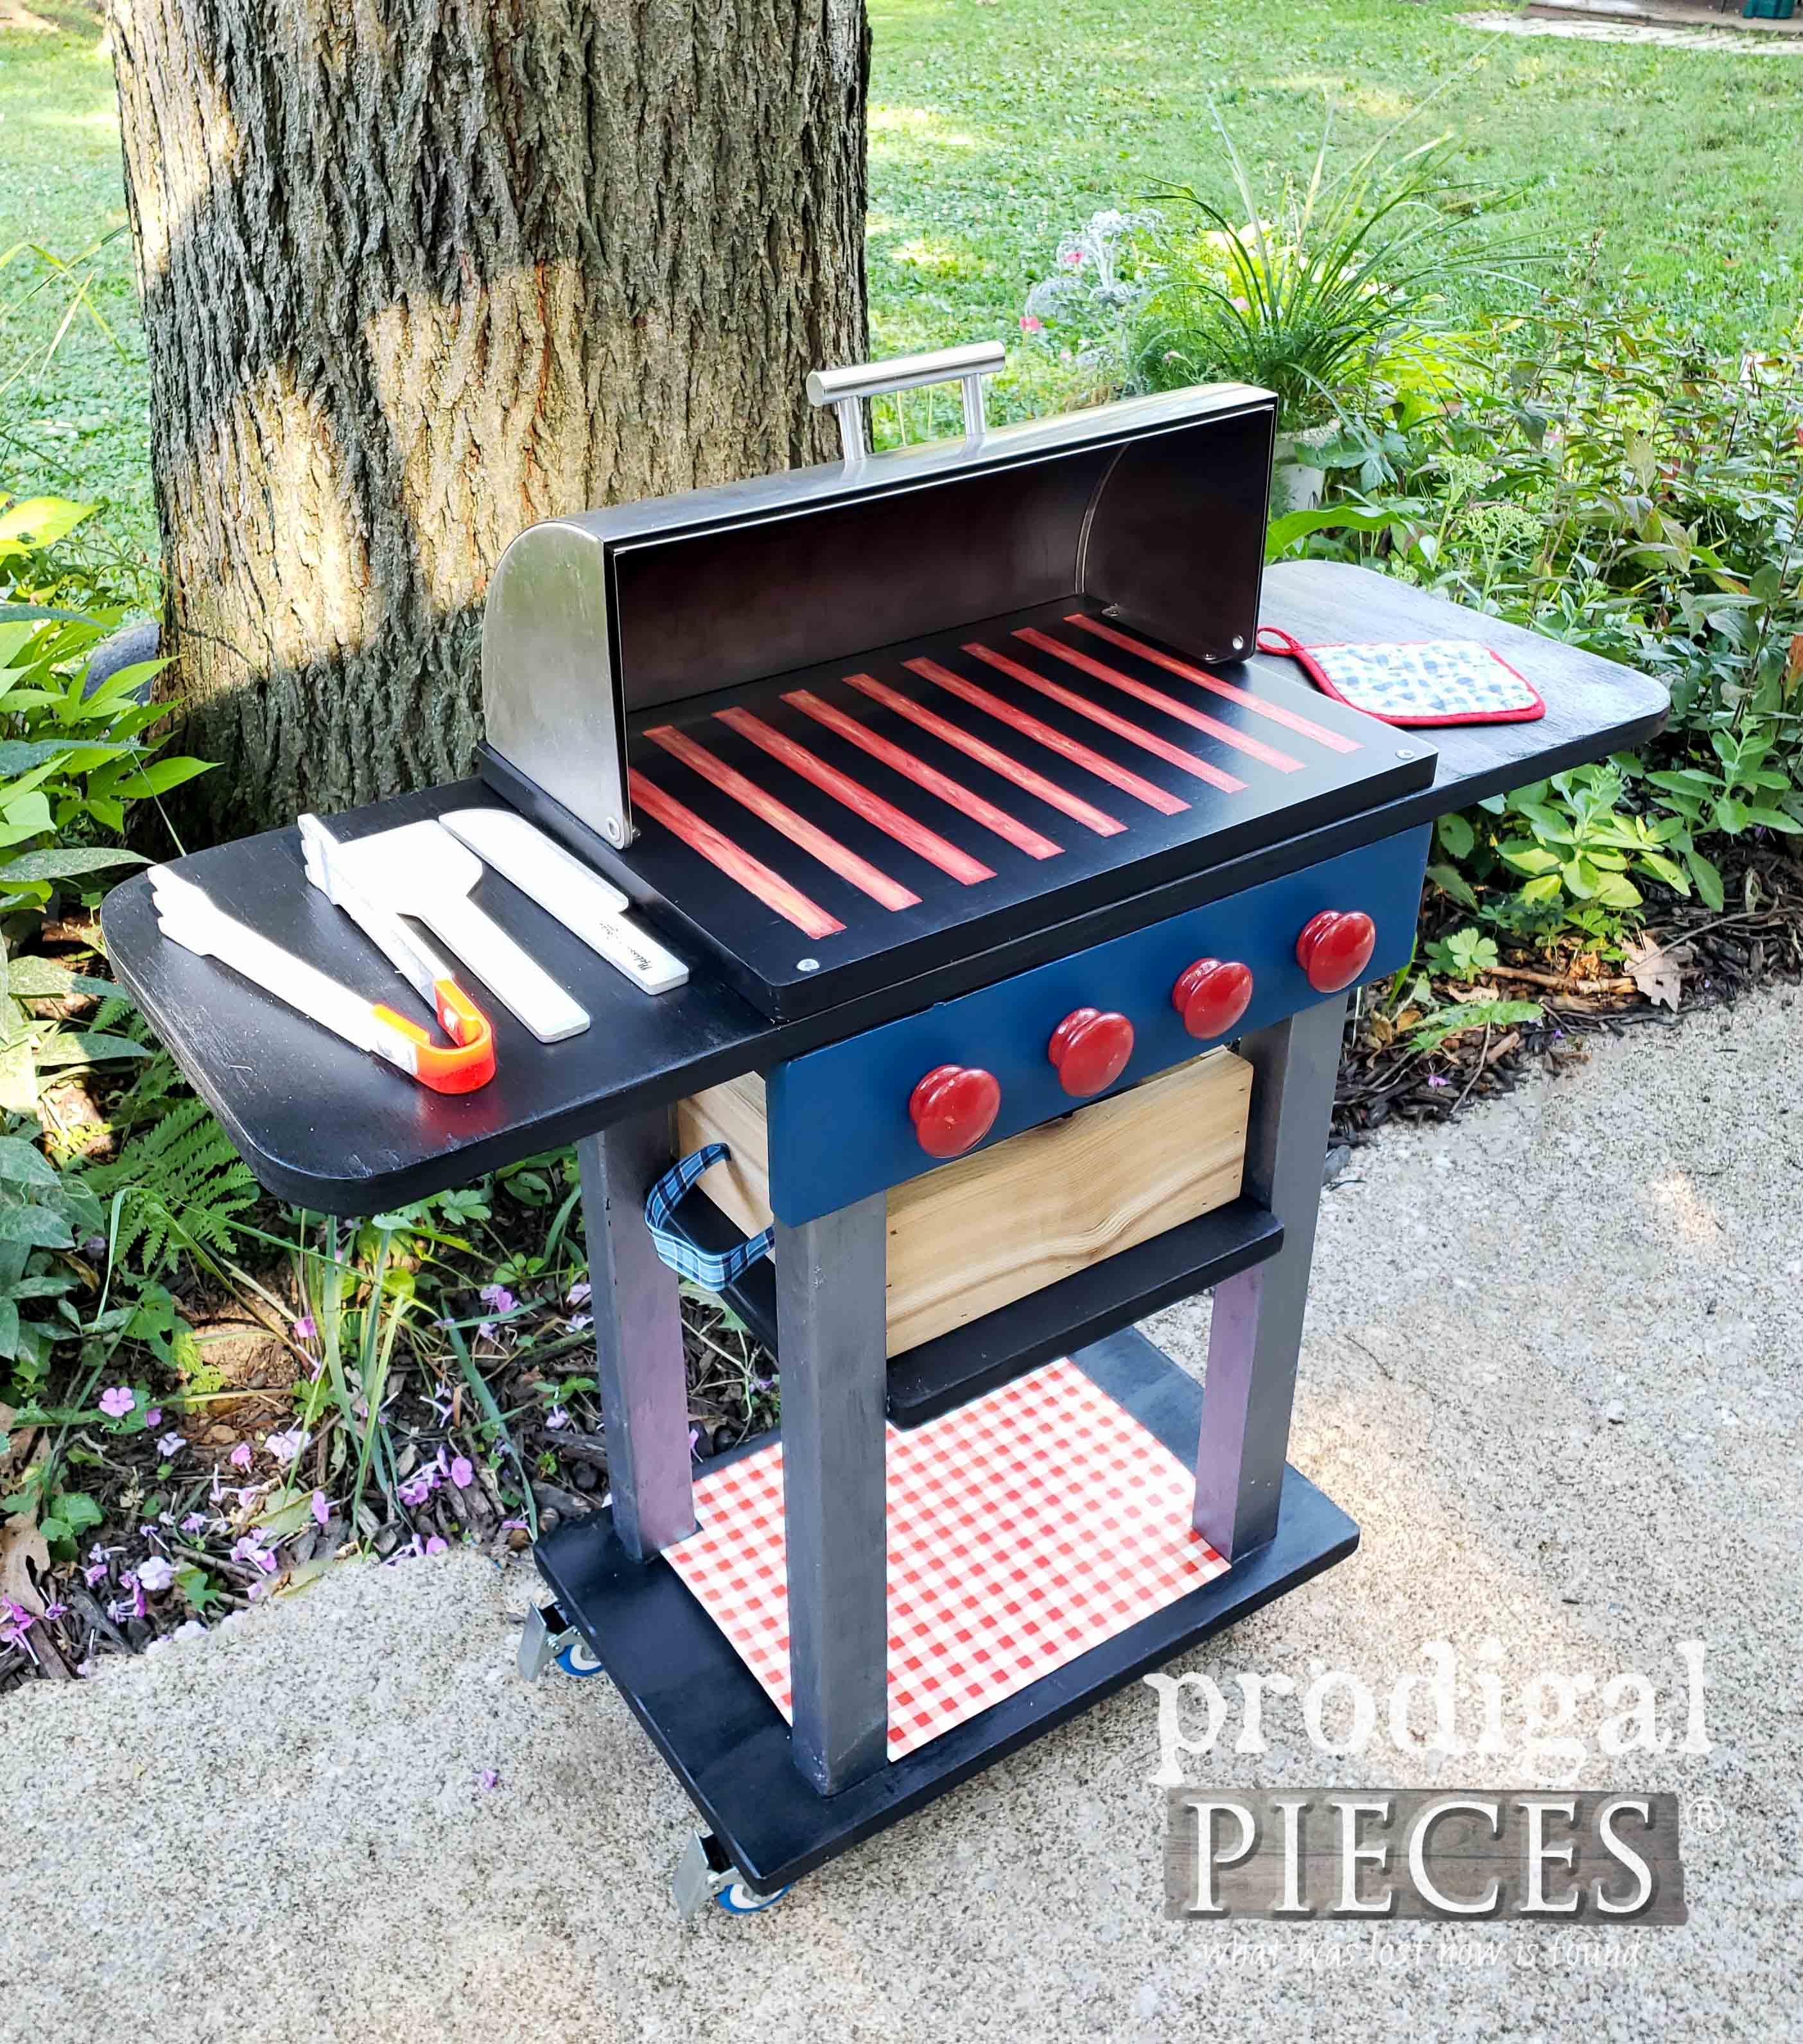 Upcycled Bread Box Becomes Pretend Play Grill by Larissa of Prodigal Pieces | prodigalpieces.com #prodigalpieces #diy #handmade #home #kids #toys #pretendplay